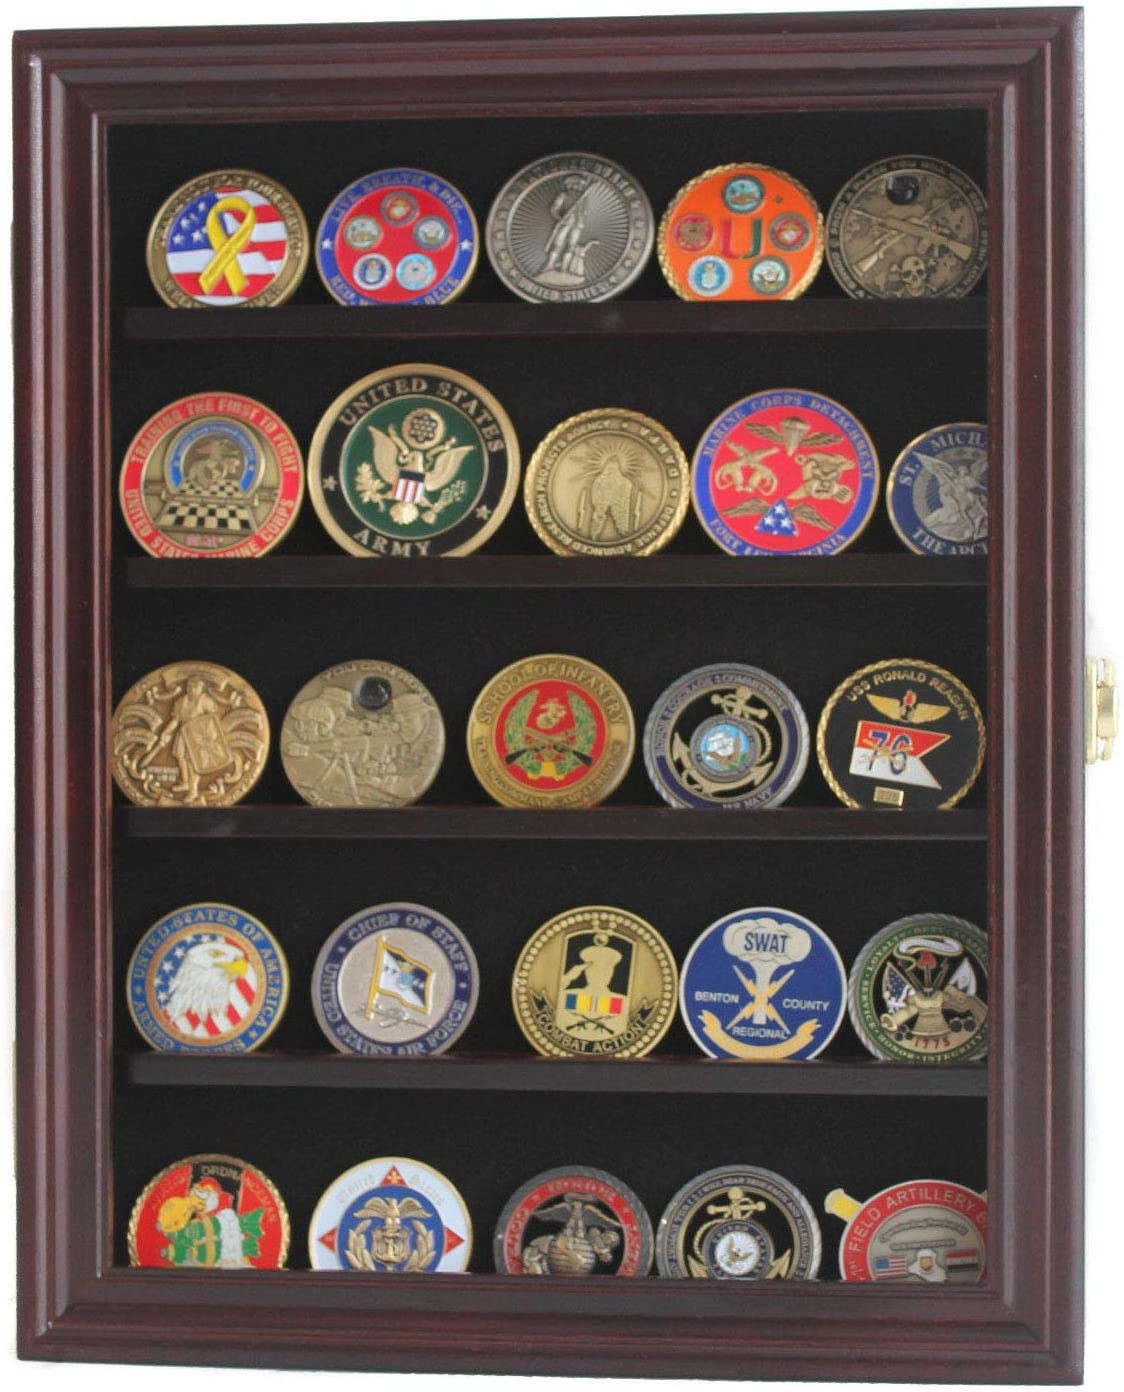 Military Challenge Coin Display Case Cabinet Medal Rack Holder Shadow Box (Mahogany Finish)